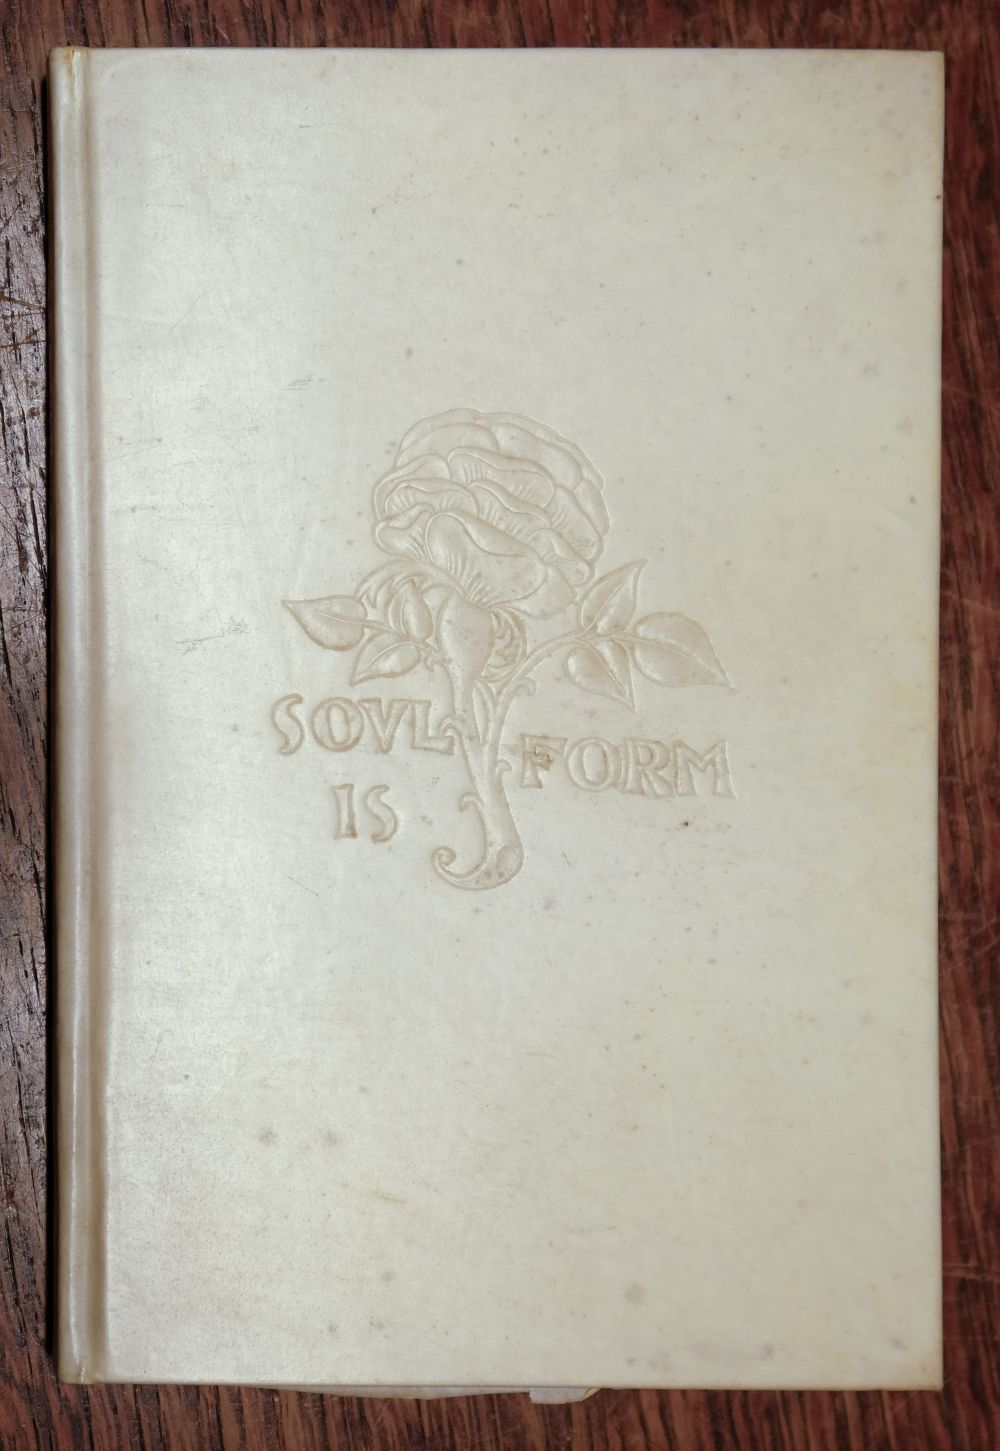 Essex House Press. The Rime of the Ancient Mariner, 1903 - Image 2 of 6